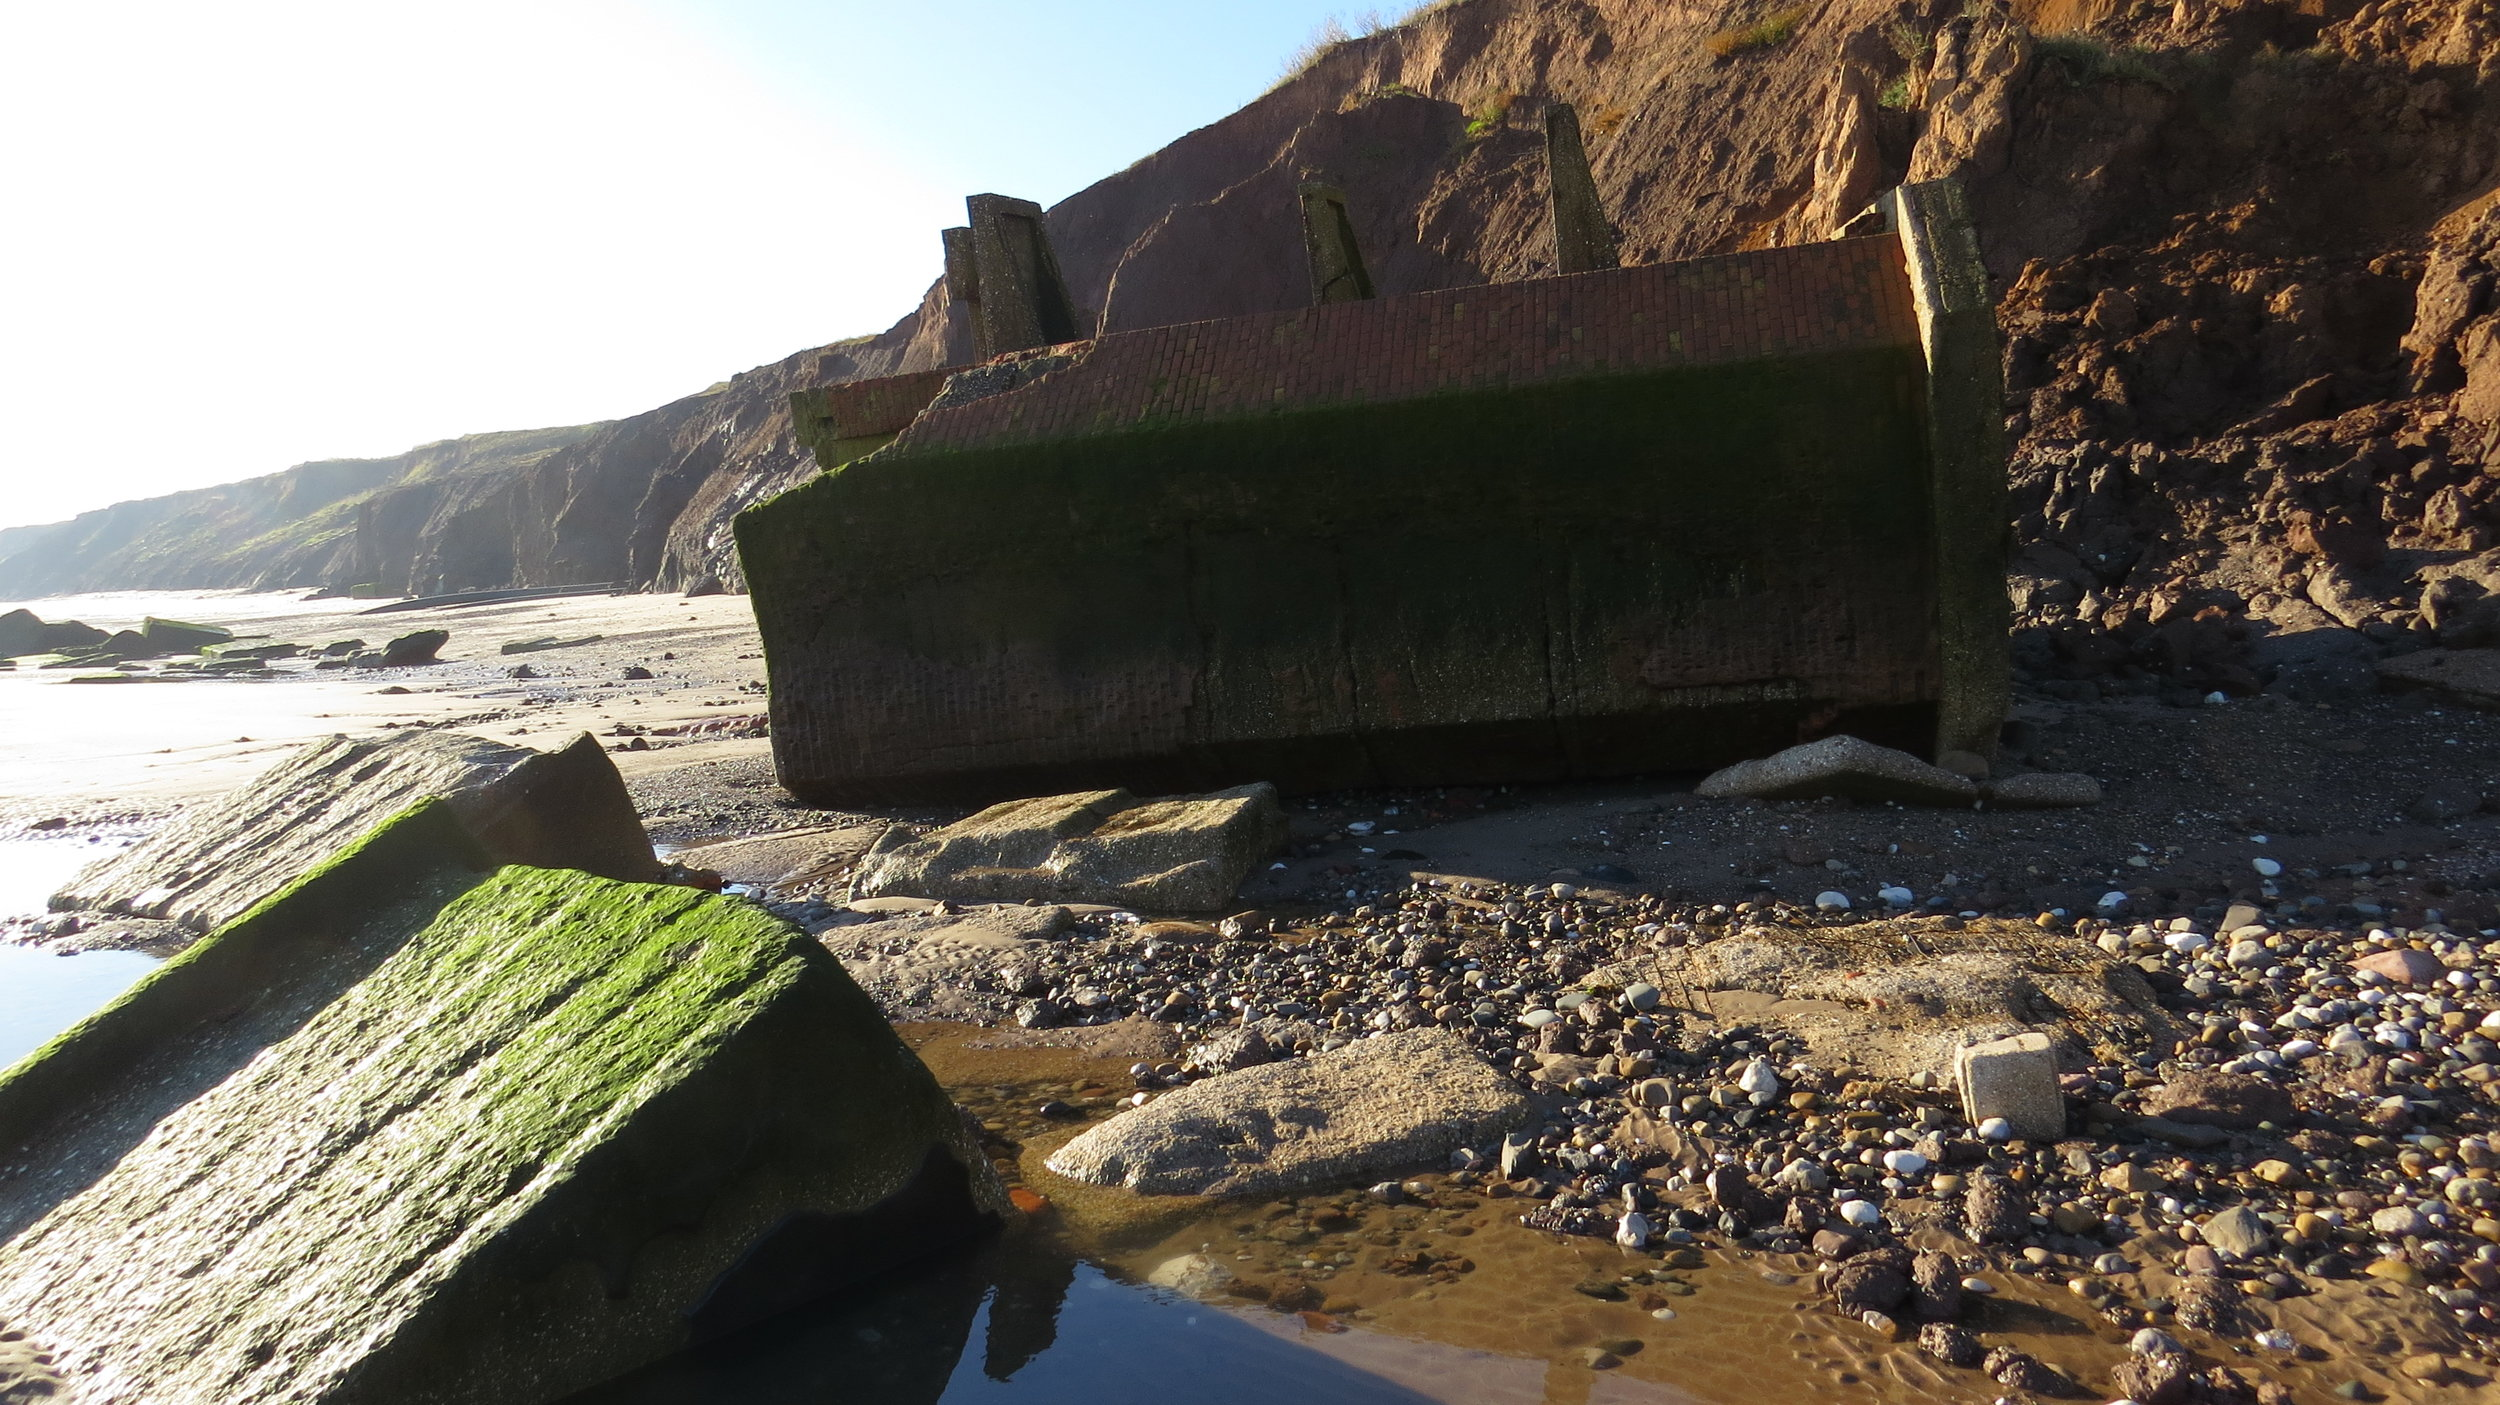 Old War Structure Collapsed onto Beach